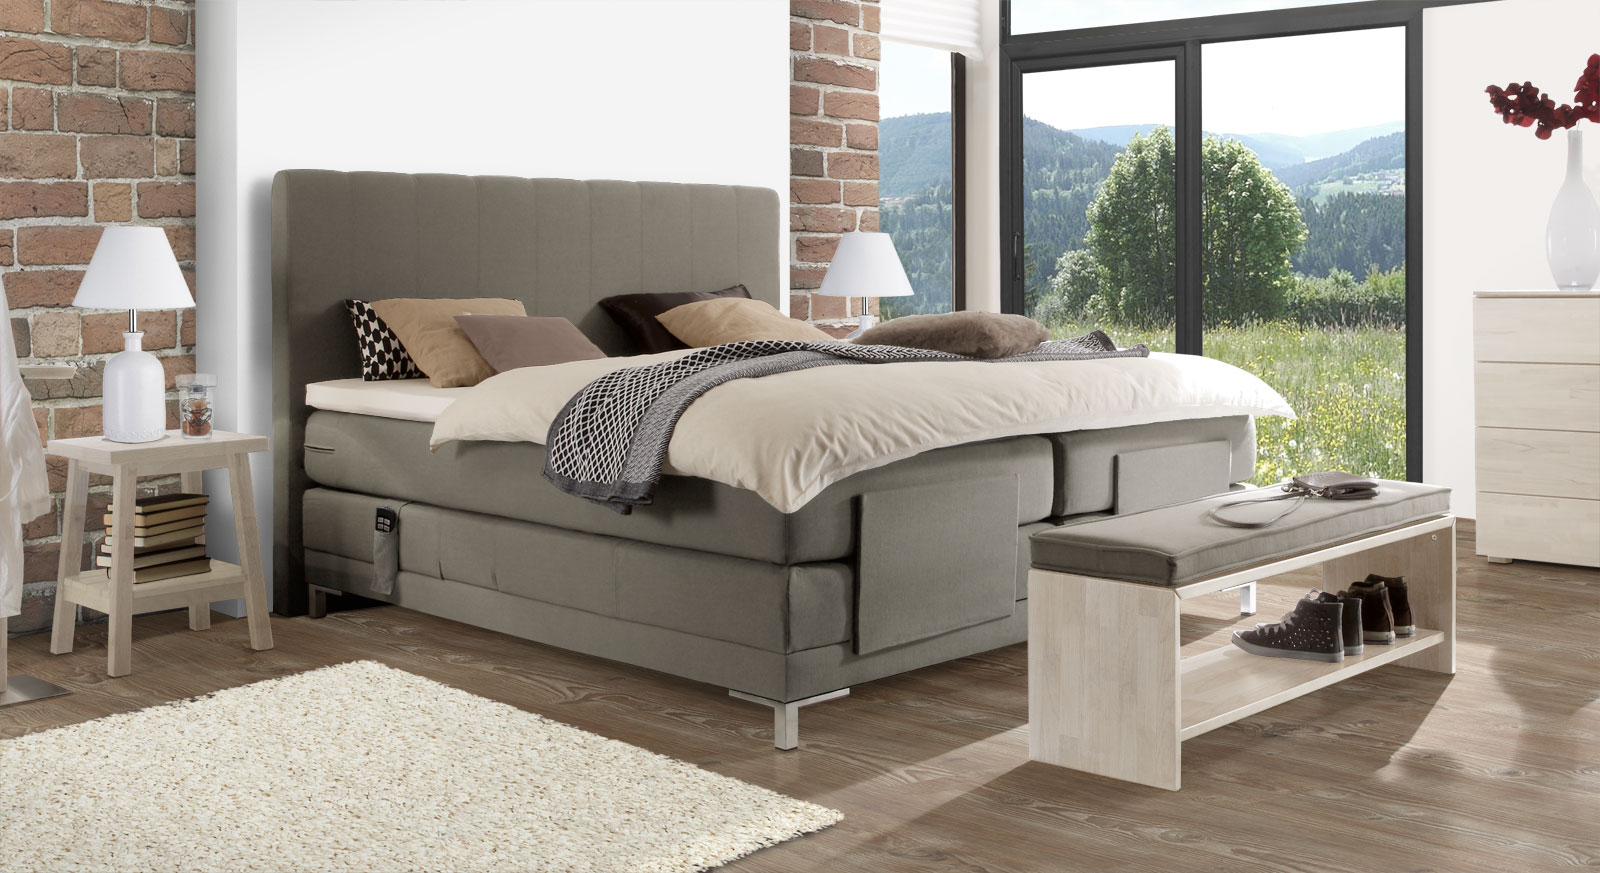 elektrisch verstellbares boxspringbett bis 120 kg denton. Black Bedroom Furniture Sets. Home Design Ideas